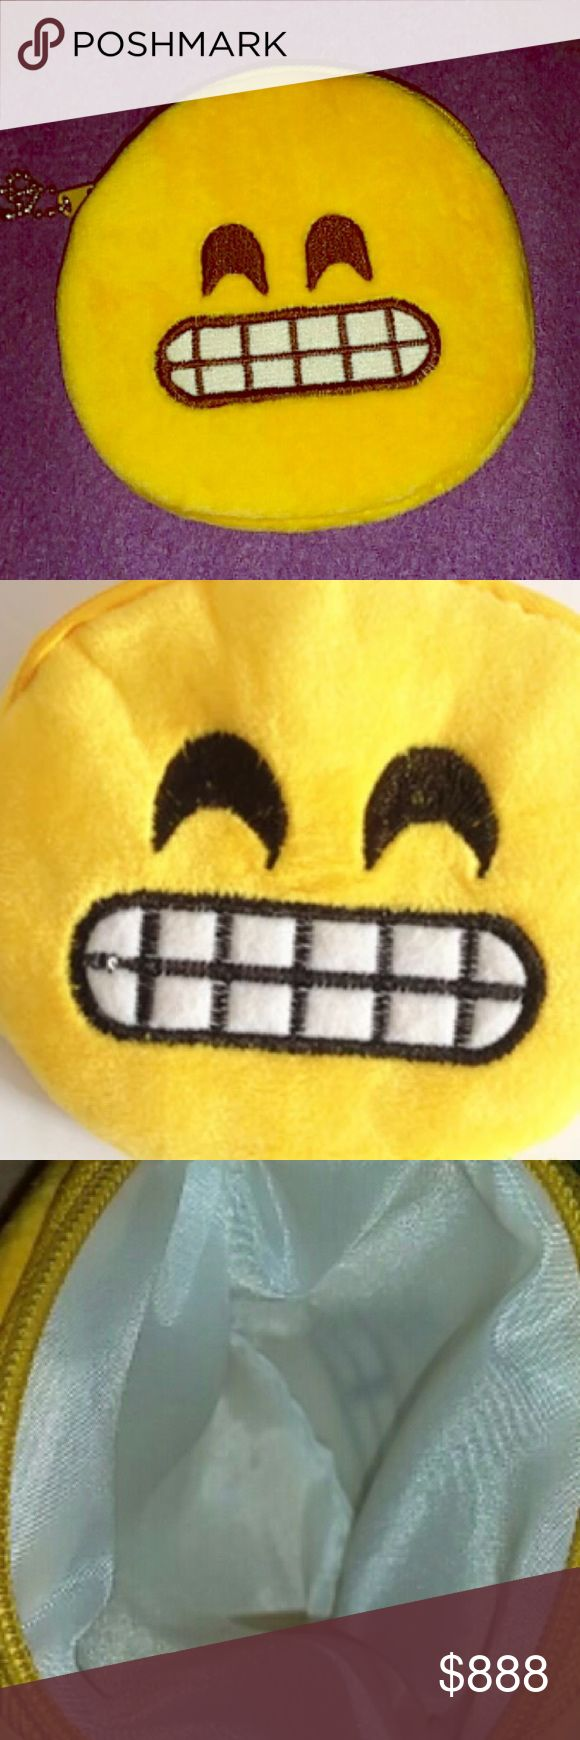 """wholesale CHEEZIN HAPPY FACE ICON KEY  PURSE SET OF 3 -MIX MATCH!   GET YOURS! Sooooo cute! Quality! Fluffy! Ahhhhhh! Bookmark as these will not last long! Sets of all 5 will be available, also! They are cotton 15.5 sq. inch around. 5"""" long w/circumference.. Zip top closure, optional key leash, show your emotion for the day carrying  this cute accessory!  U COUTURE Bags Wallets"""